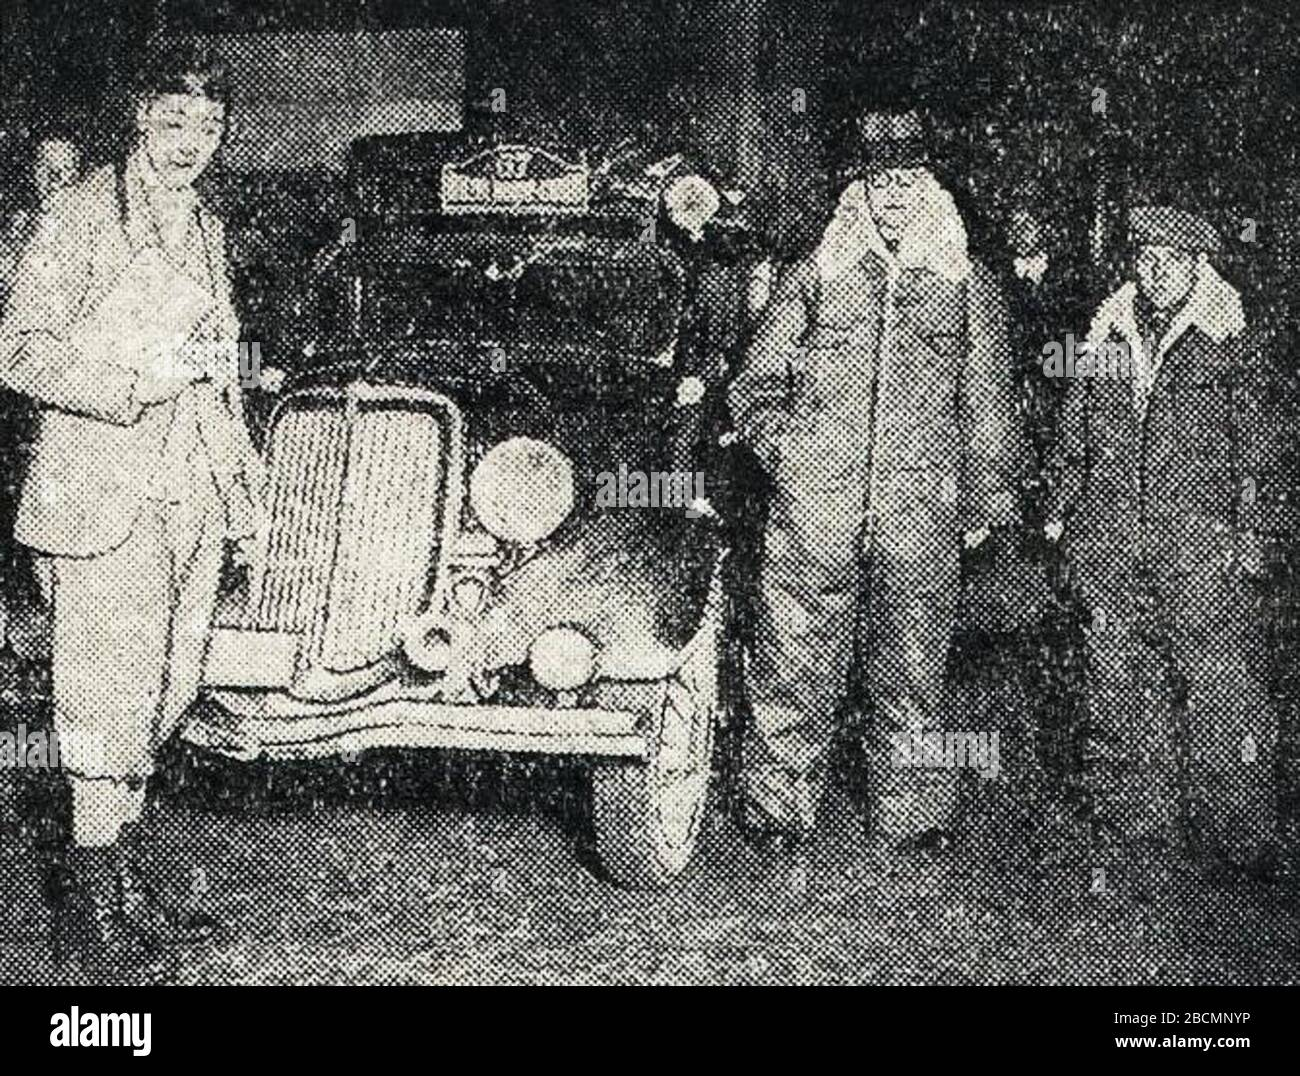 """""""Français: Rallye Monte Carlo 1934, le suédois Glerum ici à Bruxelles. English: Entry #67 at the 1934 Rallye Monte Carlo is a Ford driven by P. J. Glerum, having started in Tallinn,[1] this is then in Bruxelles?; 16 October 2017; L'Auto-vélo, 25 janvier 1934; L'Auto-vélo; """" Stock Photo"""